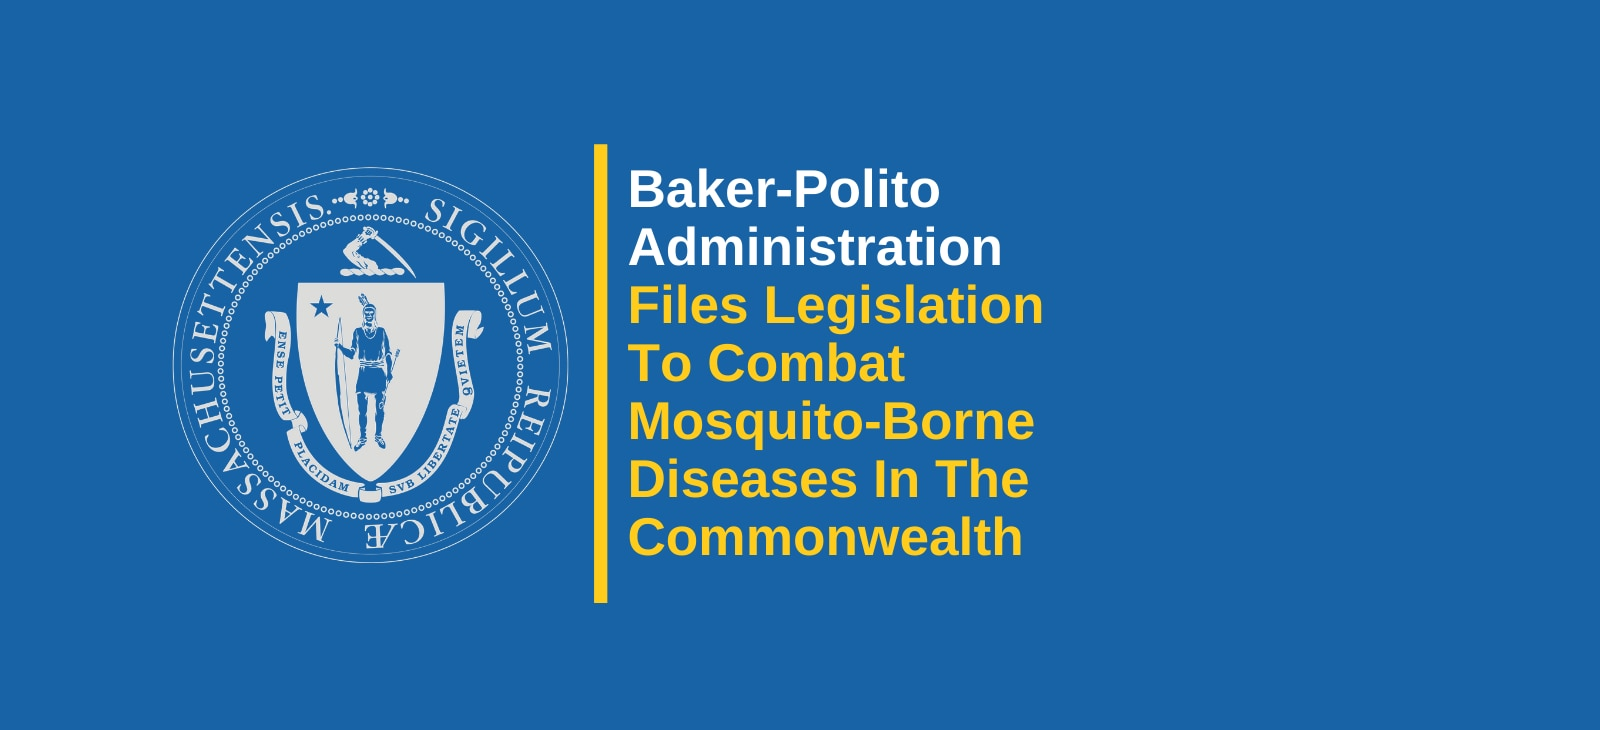 Baker-Polito Administration Files Legislation to Combat Mosquito-Borne Diseases in the Commonwealth